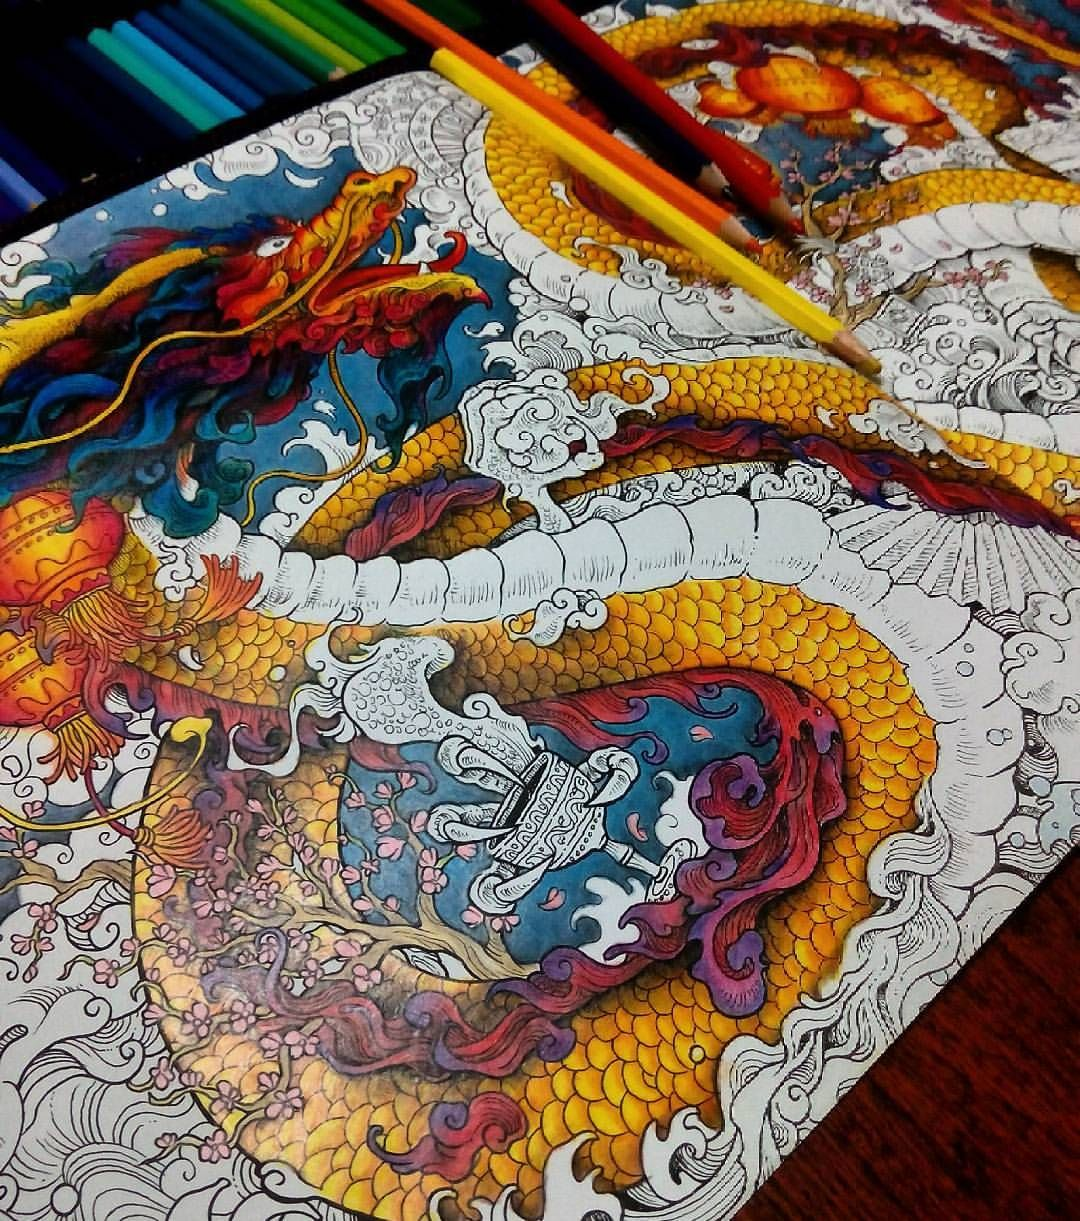 Pin By Kristin Allen On Art Coloring Coloring Books Coloring Book Art Animorphia Coloring Book